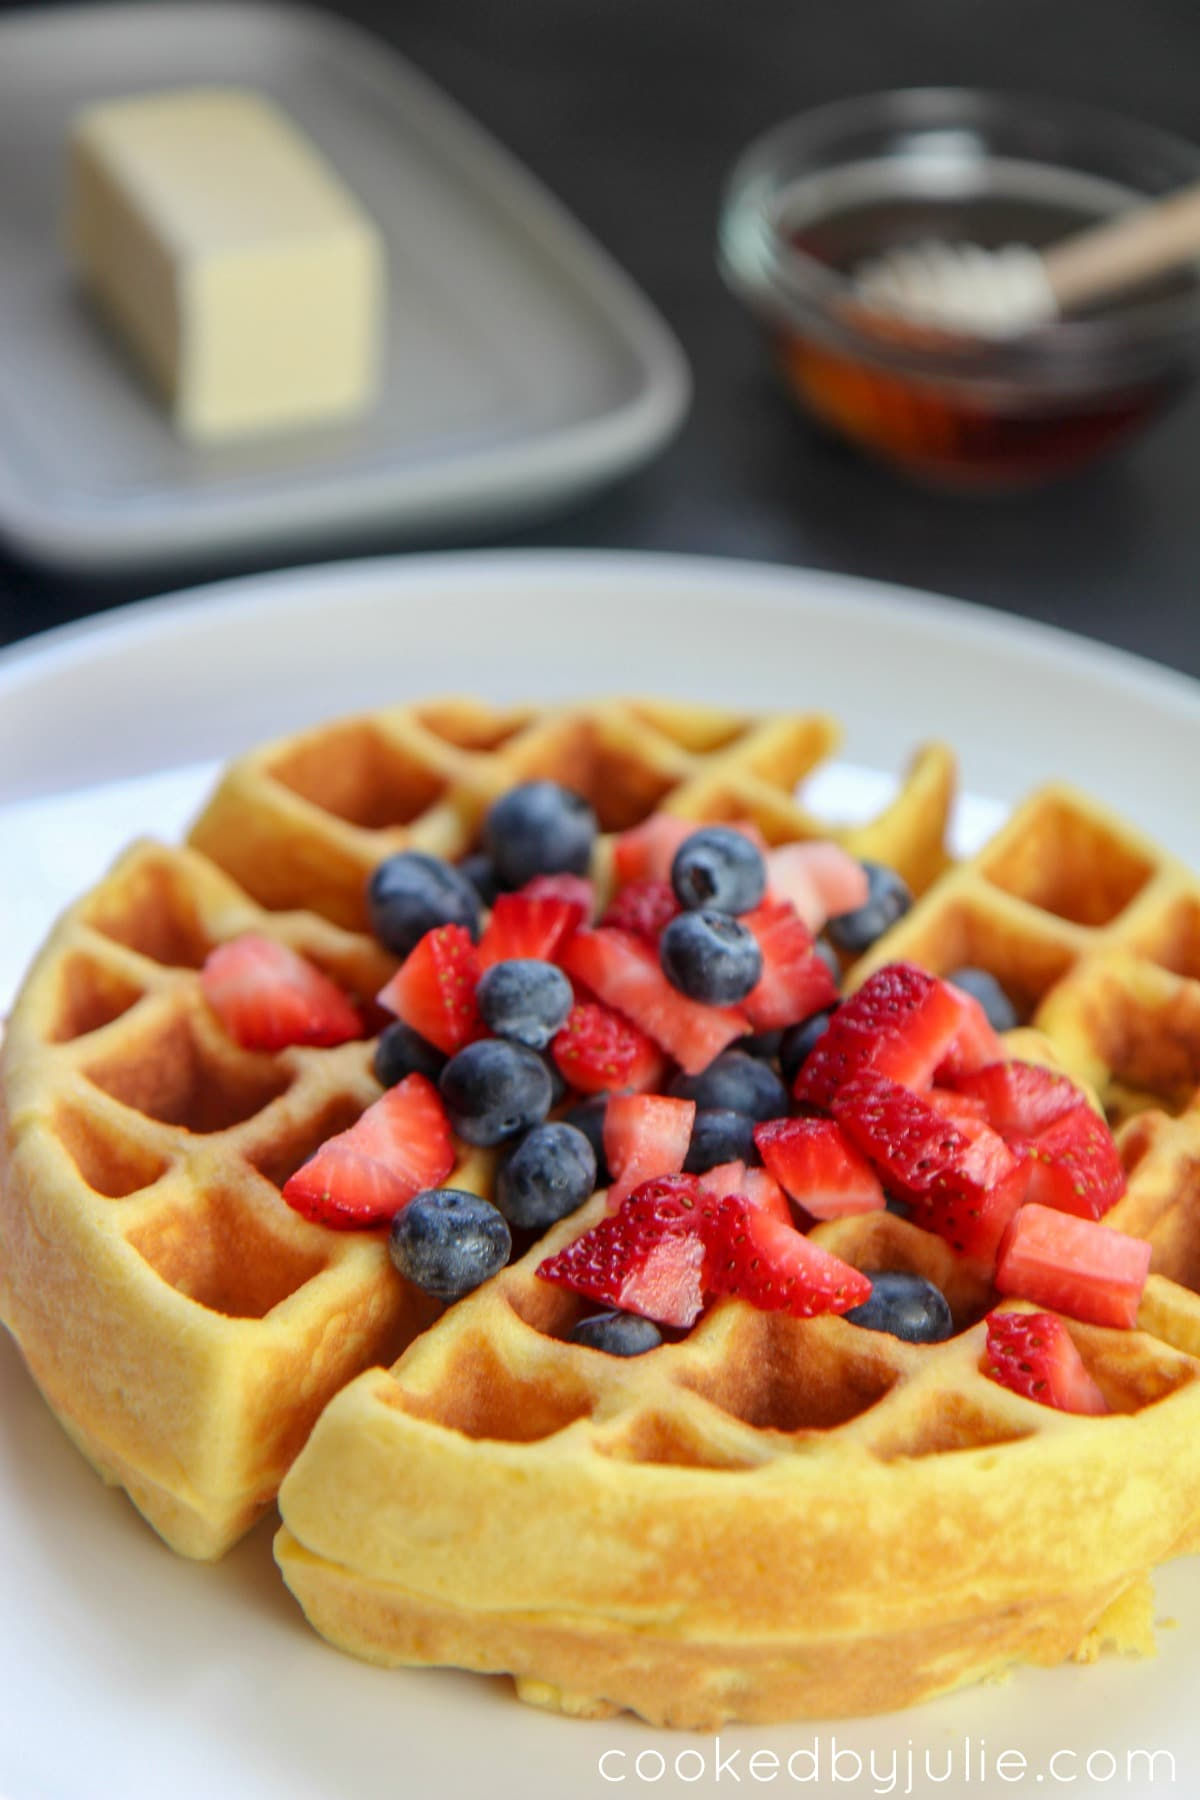 Keto Belgian Waffle with strawberries and blueberries